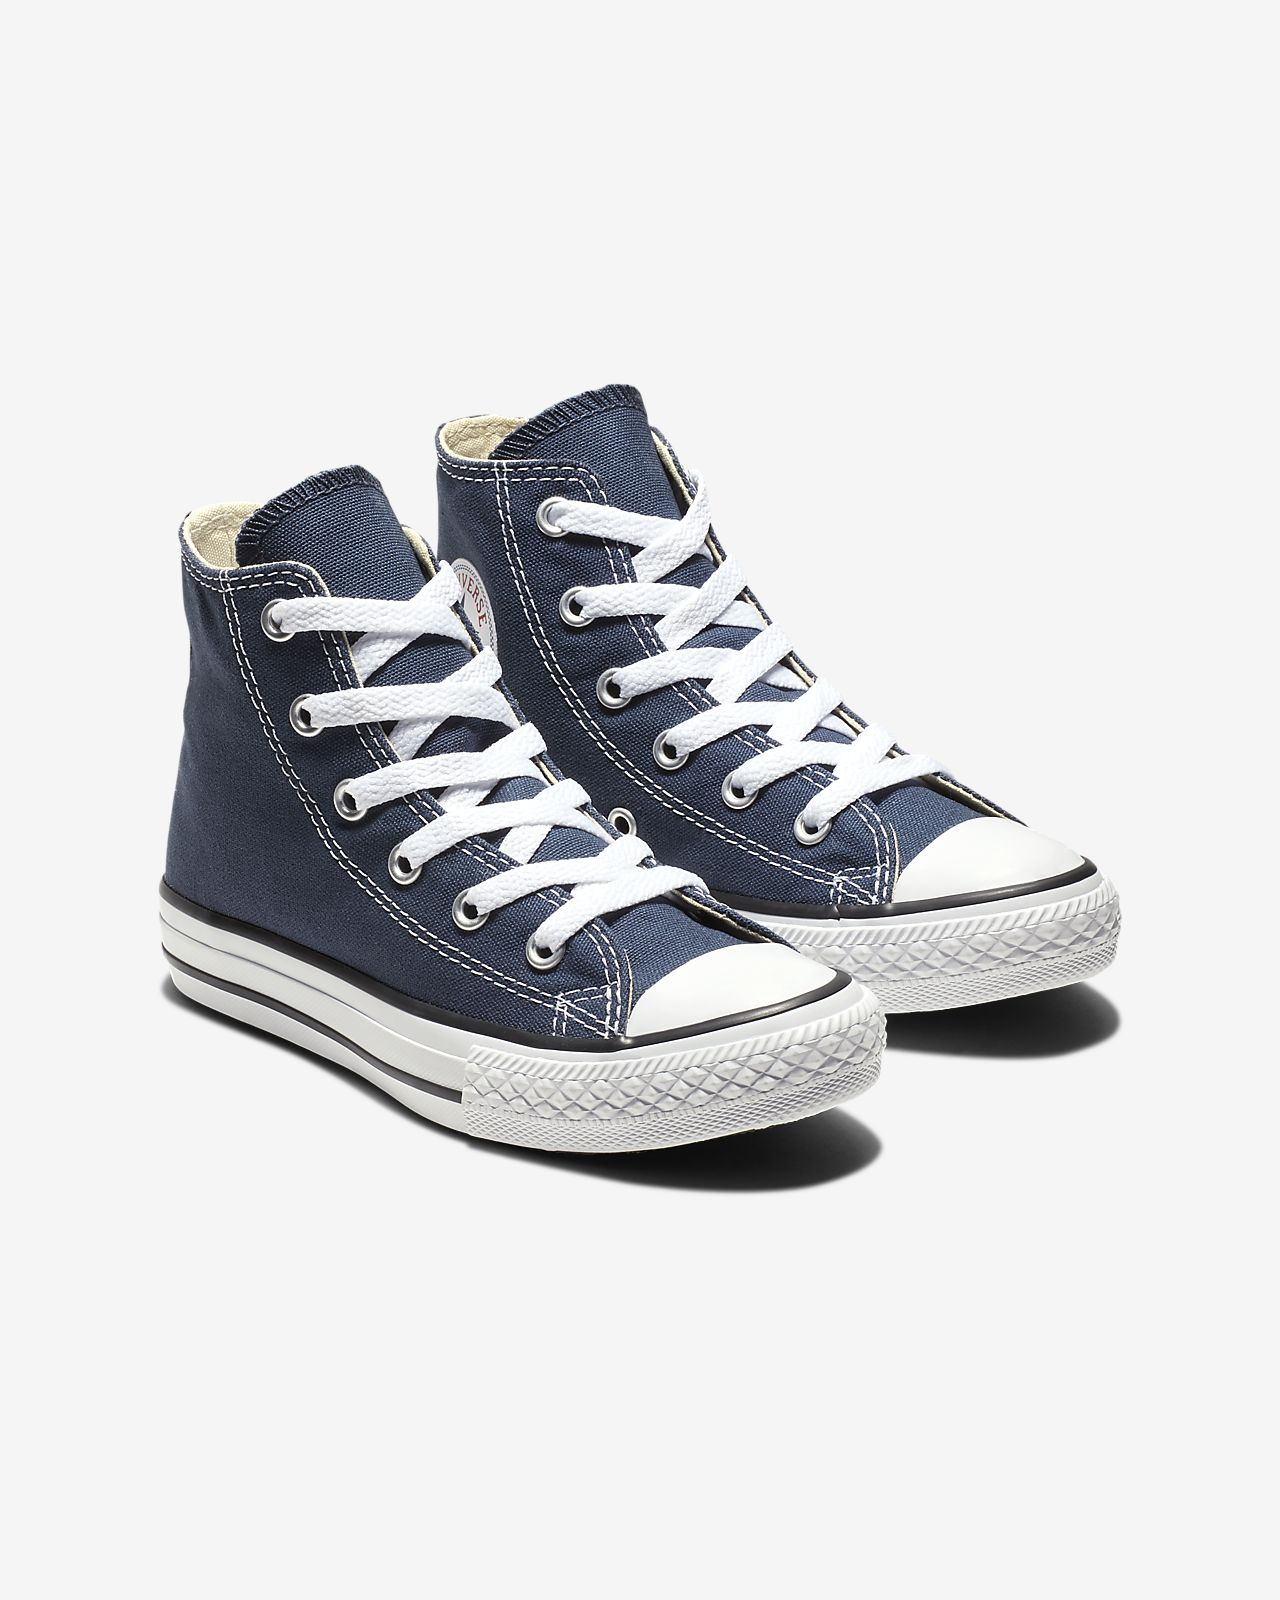 f6c7845cc2a4 Converse Chuck Taylor All Star High Top (10.5c-3y) Little Kids  Shoe ...